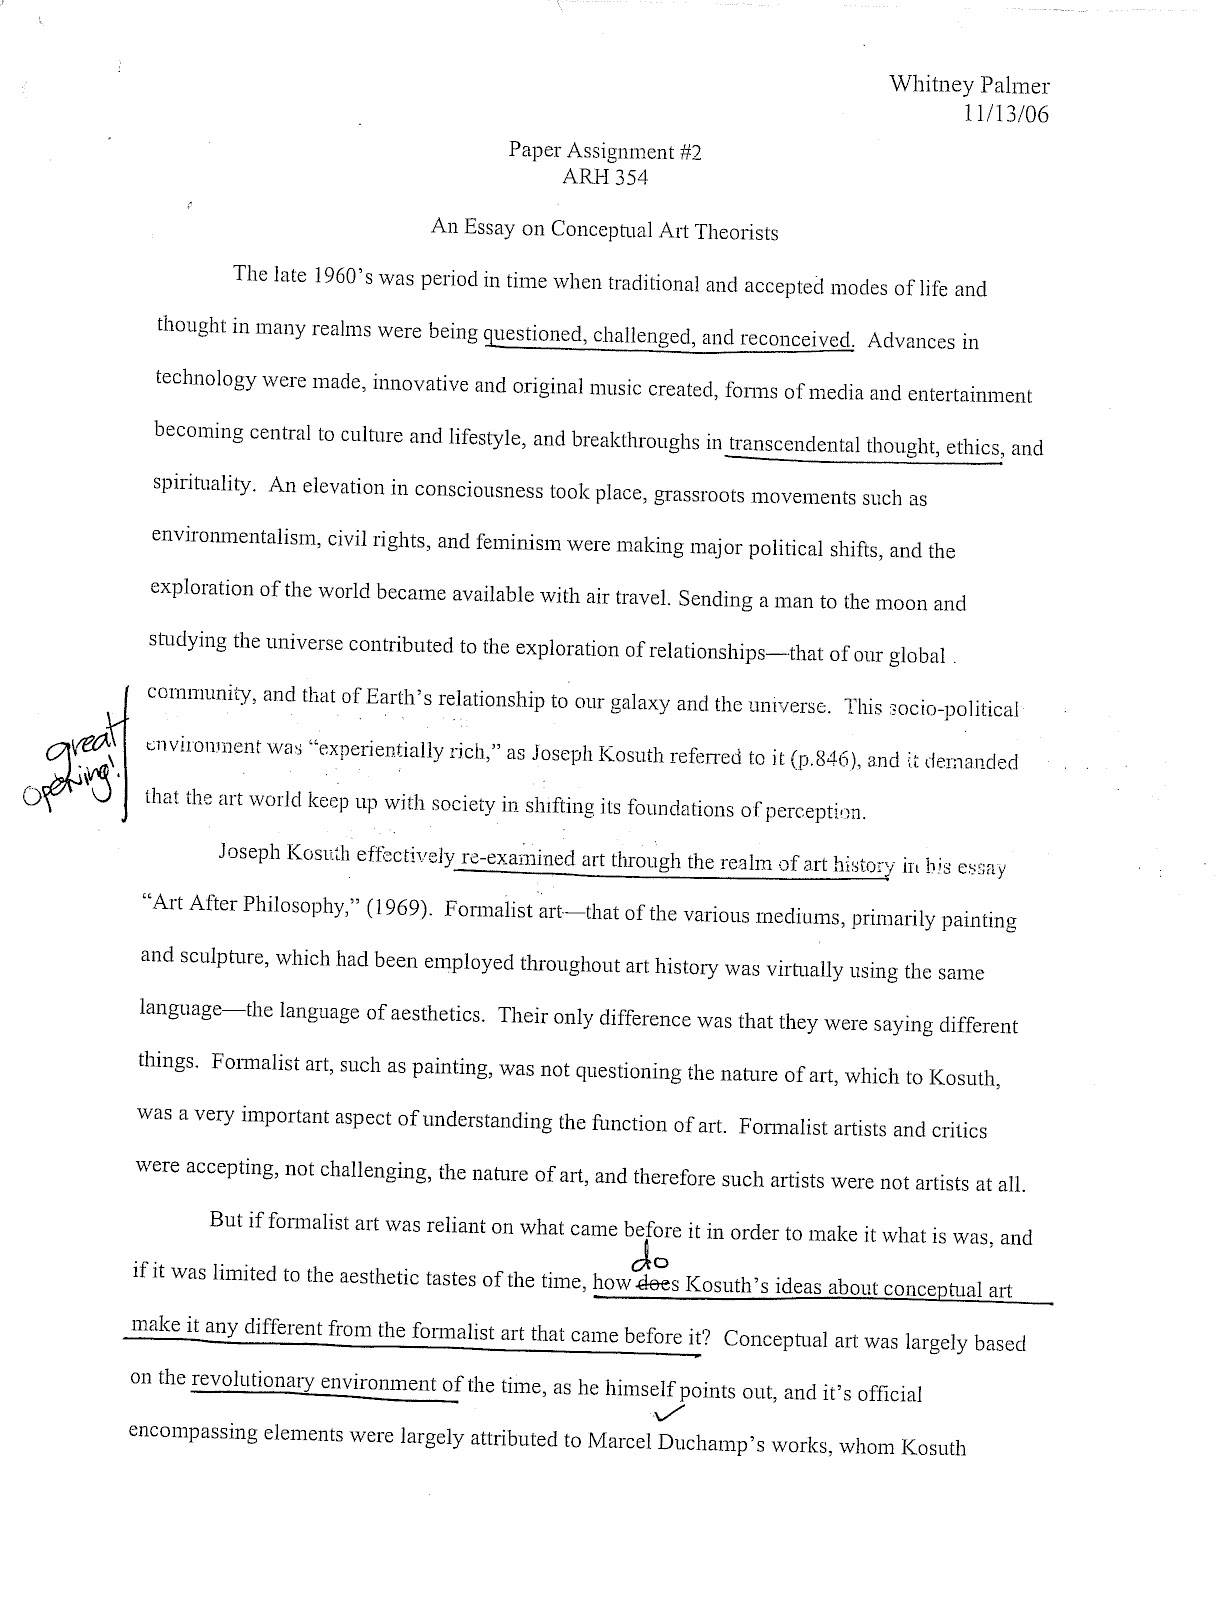 comparative analysis essays art history essays art history essays  also art history essays art history essays compucenter the aim of this essayfrom art history fall